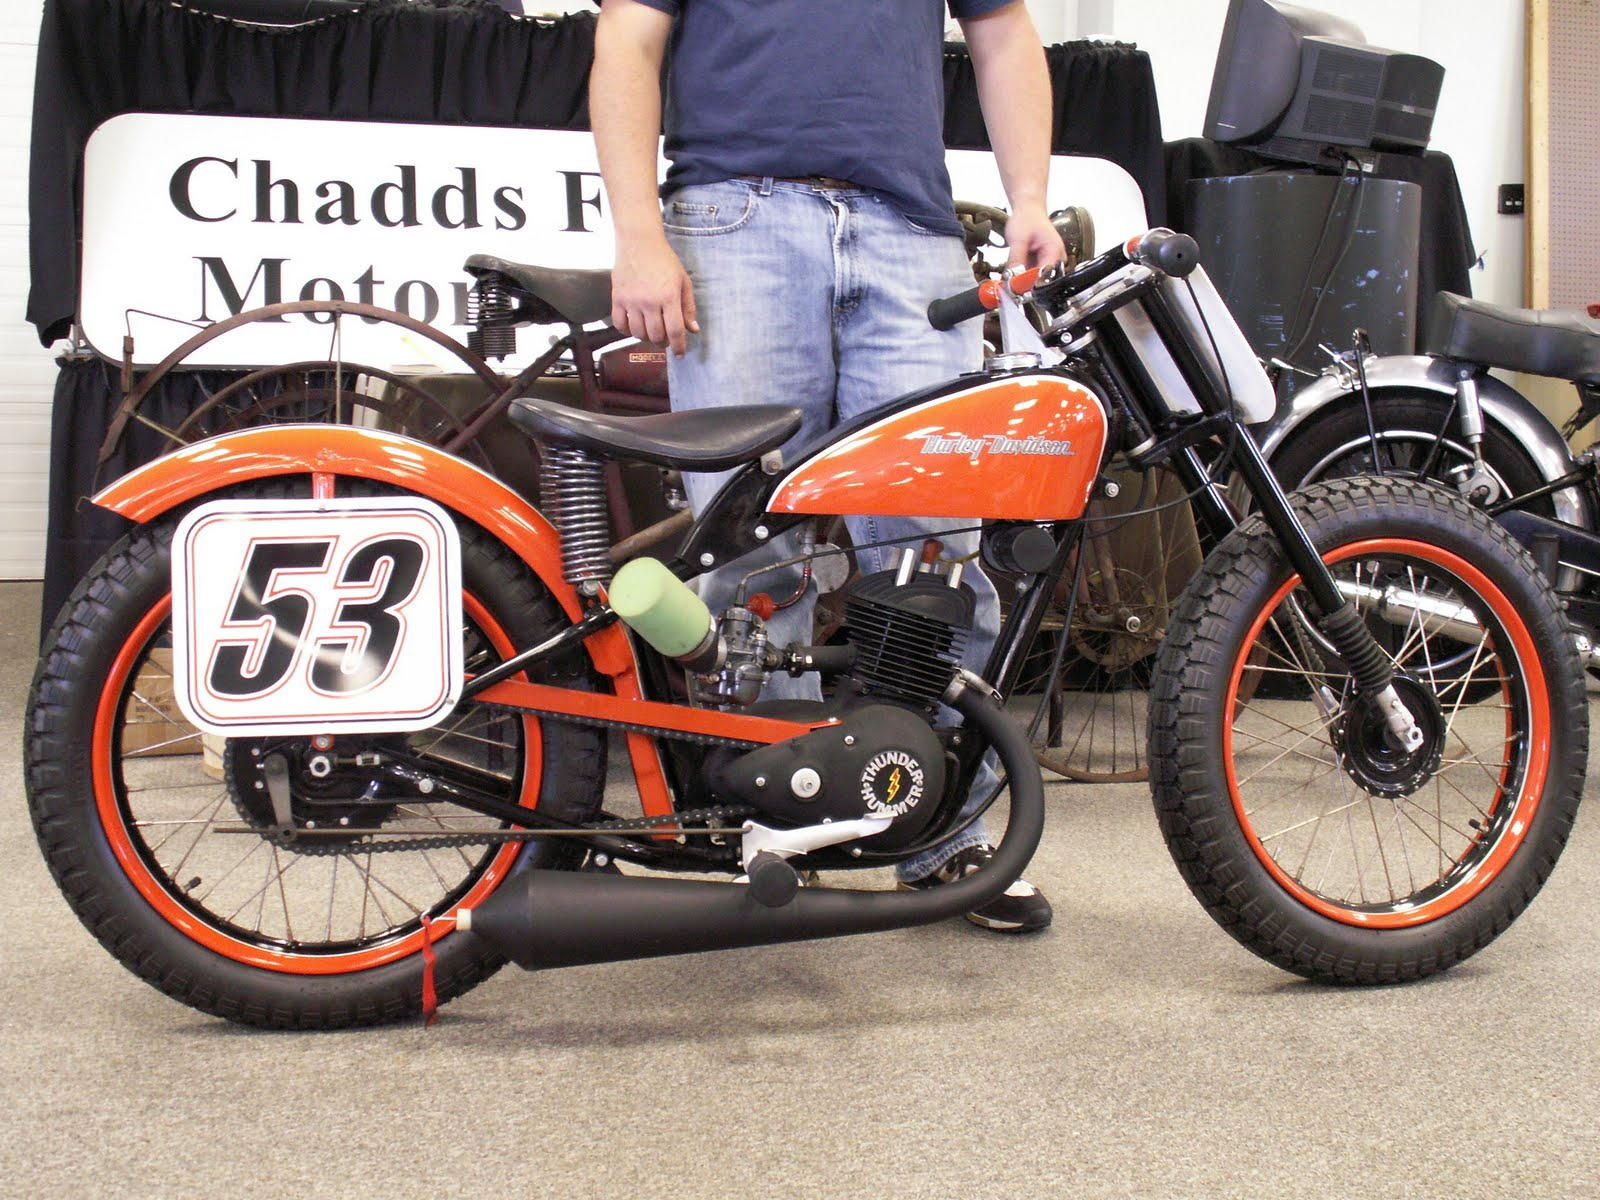 Motorcycle Auction Action